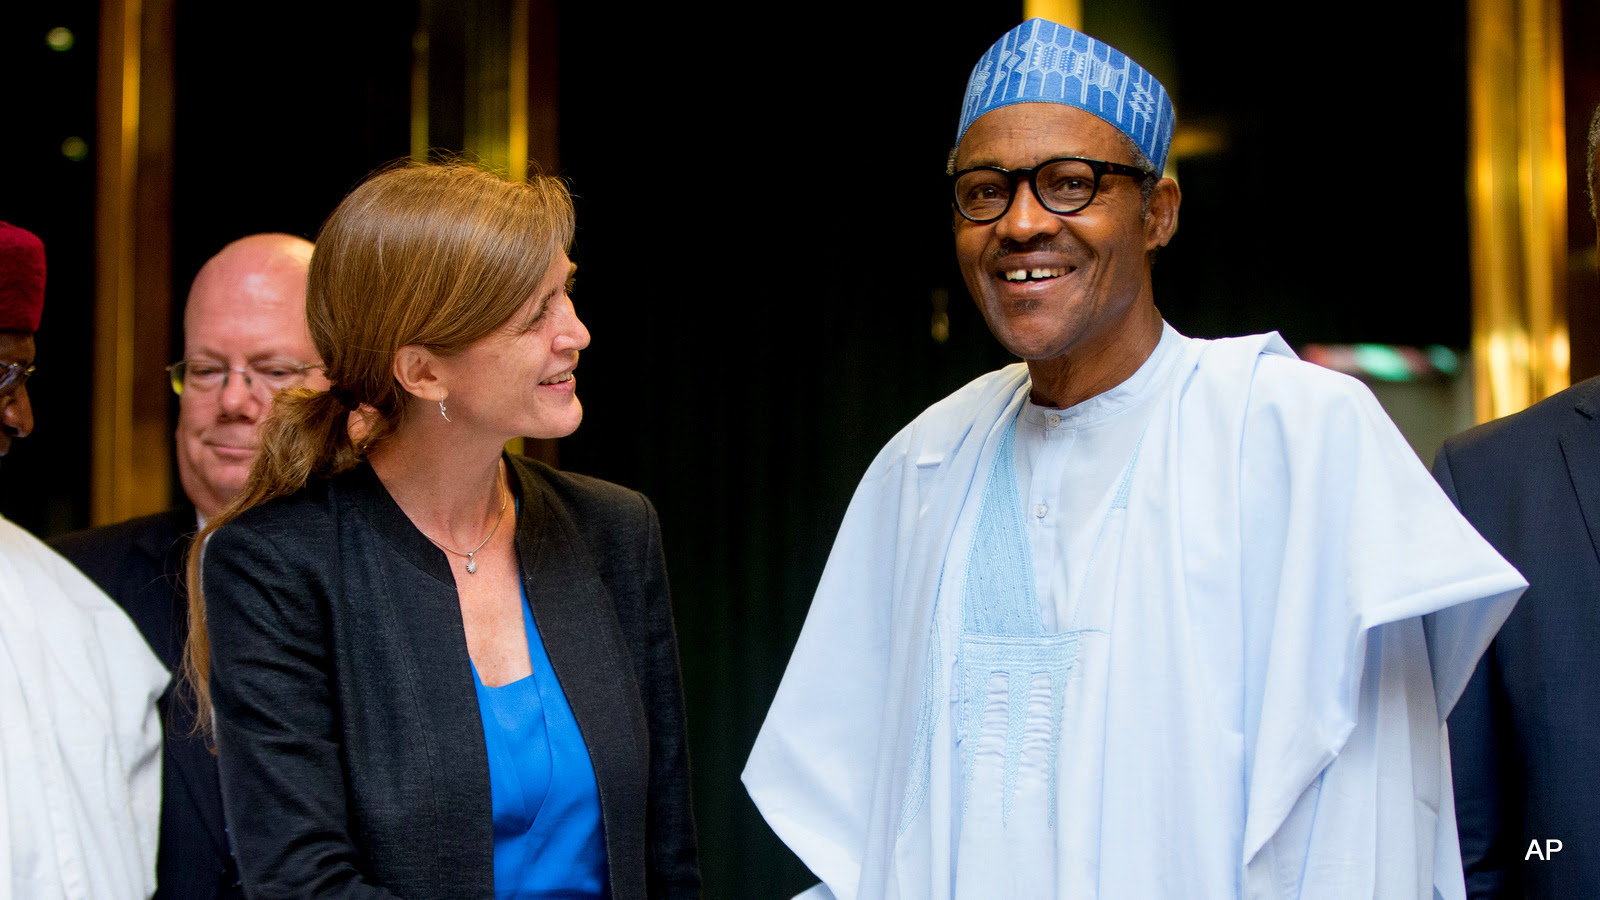 U.S. Ambassador to the United Nations Samantha Power, center left, shakes hands with Nigeria's President Muhammadu Buhari, center right, after meeting at the Presidential Villa in Abuja, Nigeria, Thursday, April 21, 2016.